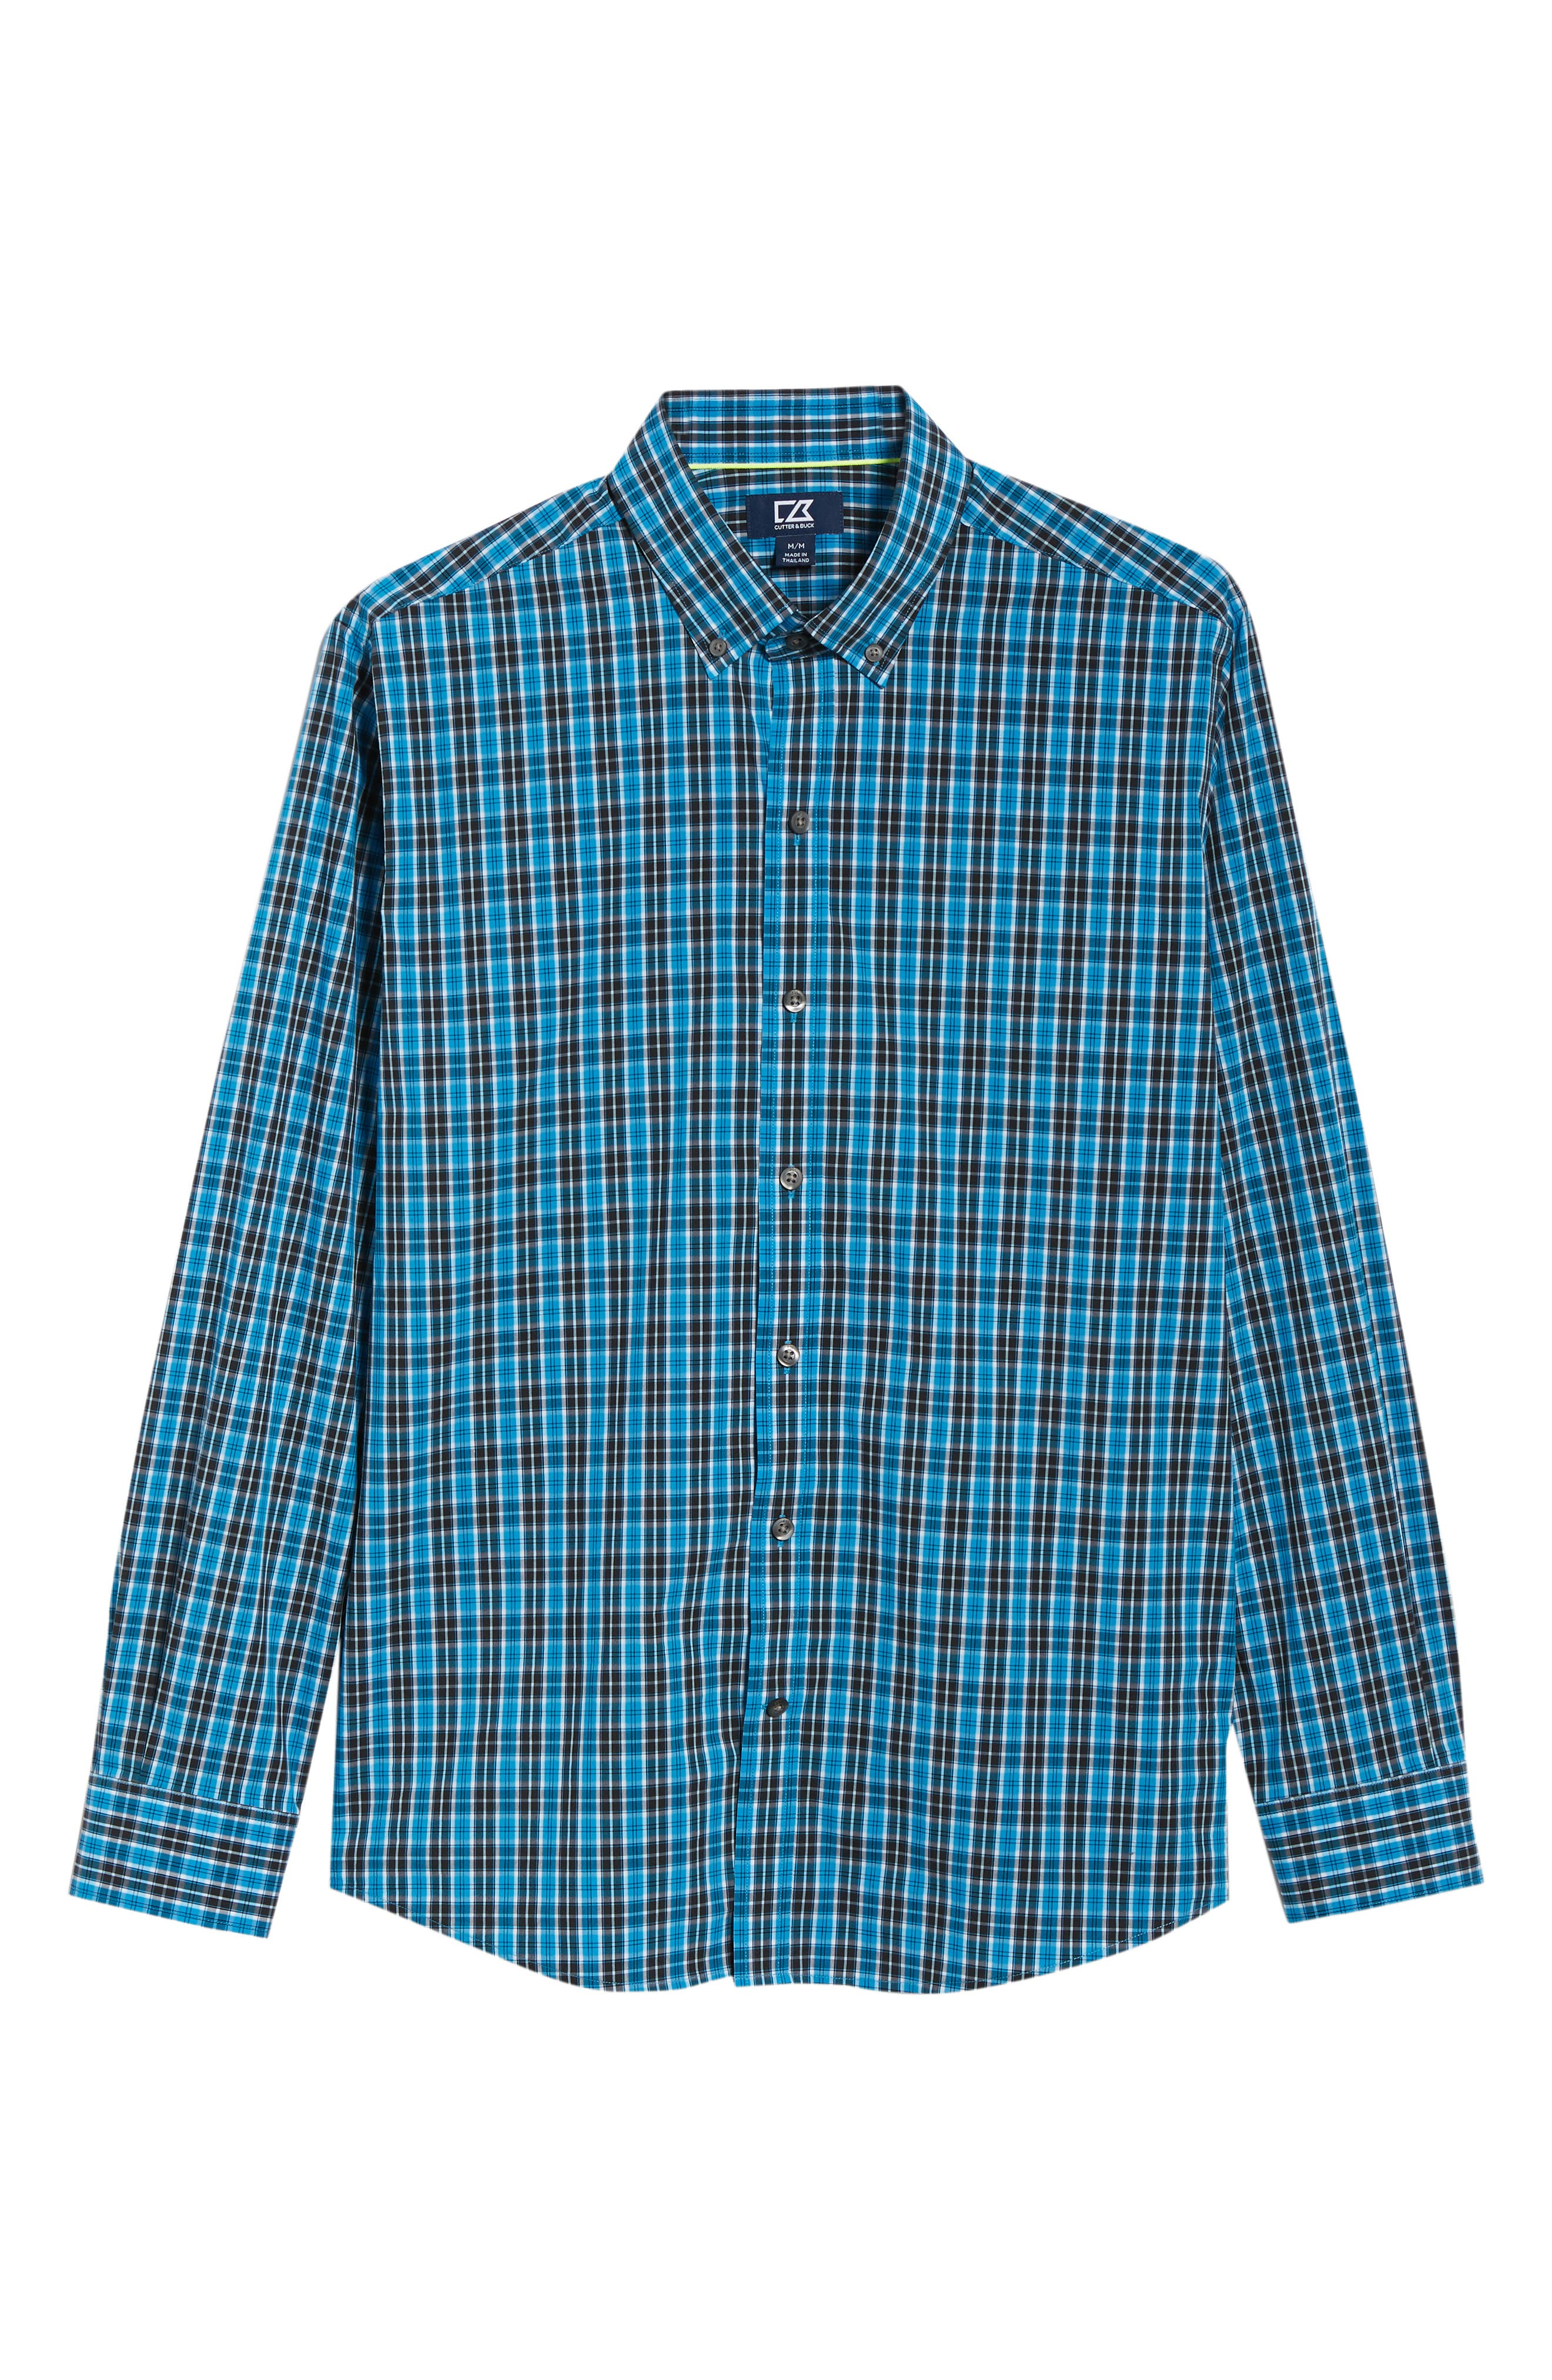 Ronald Regular Fit Plaid Performance Sport Shirt,                             Alternate thumbnail 5, color,                             ORBIT